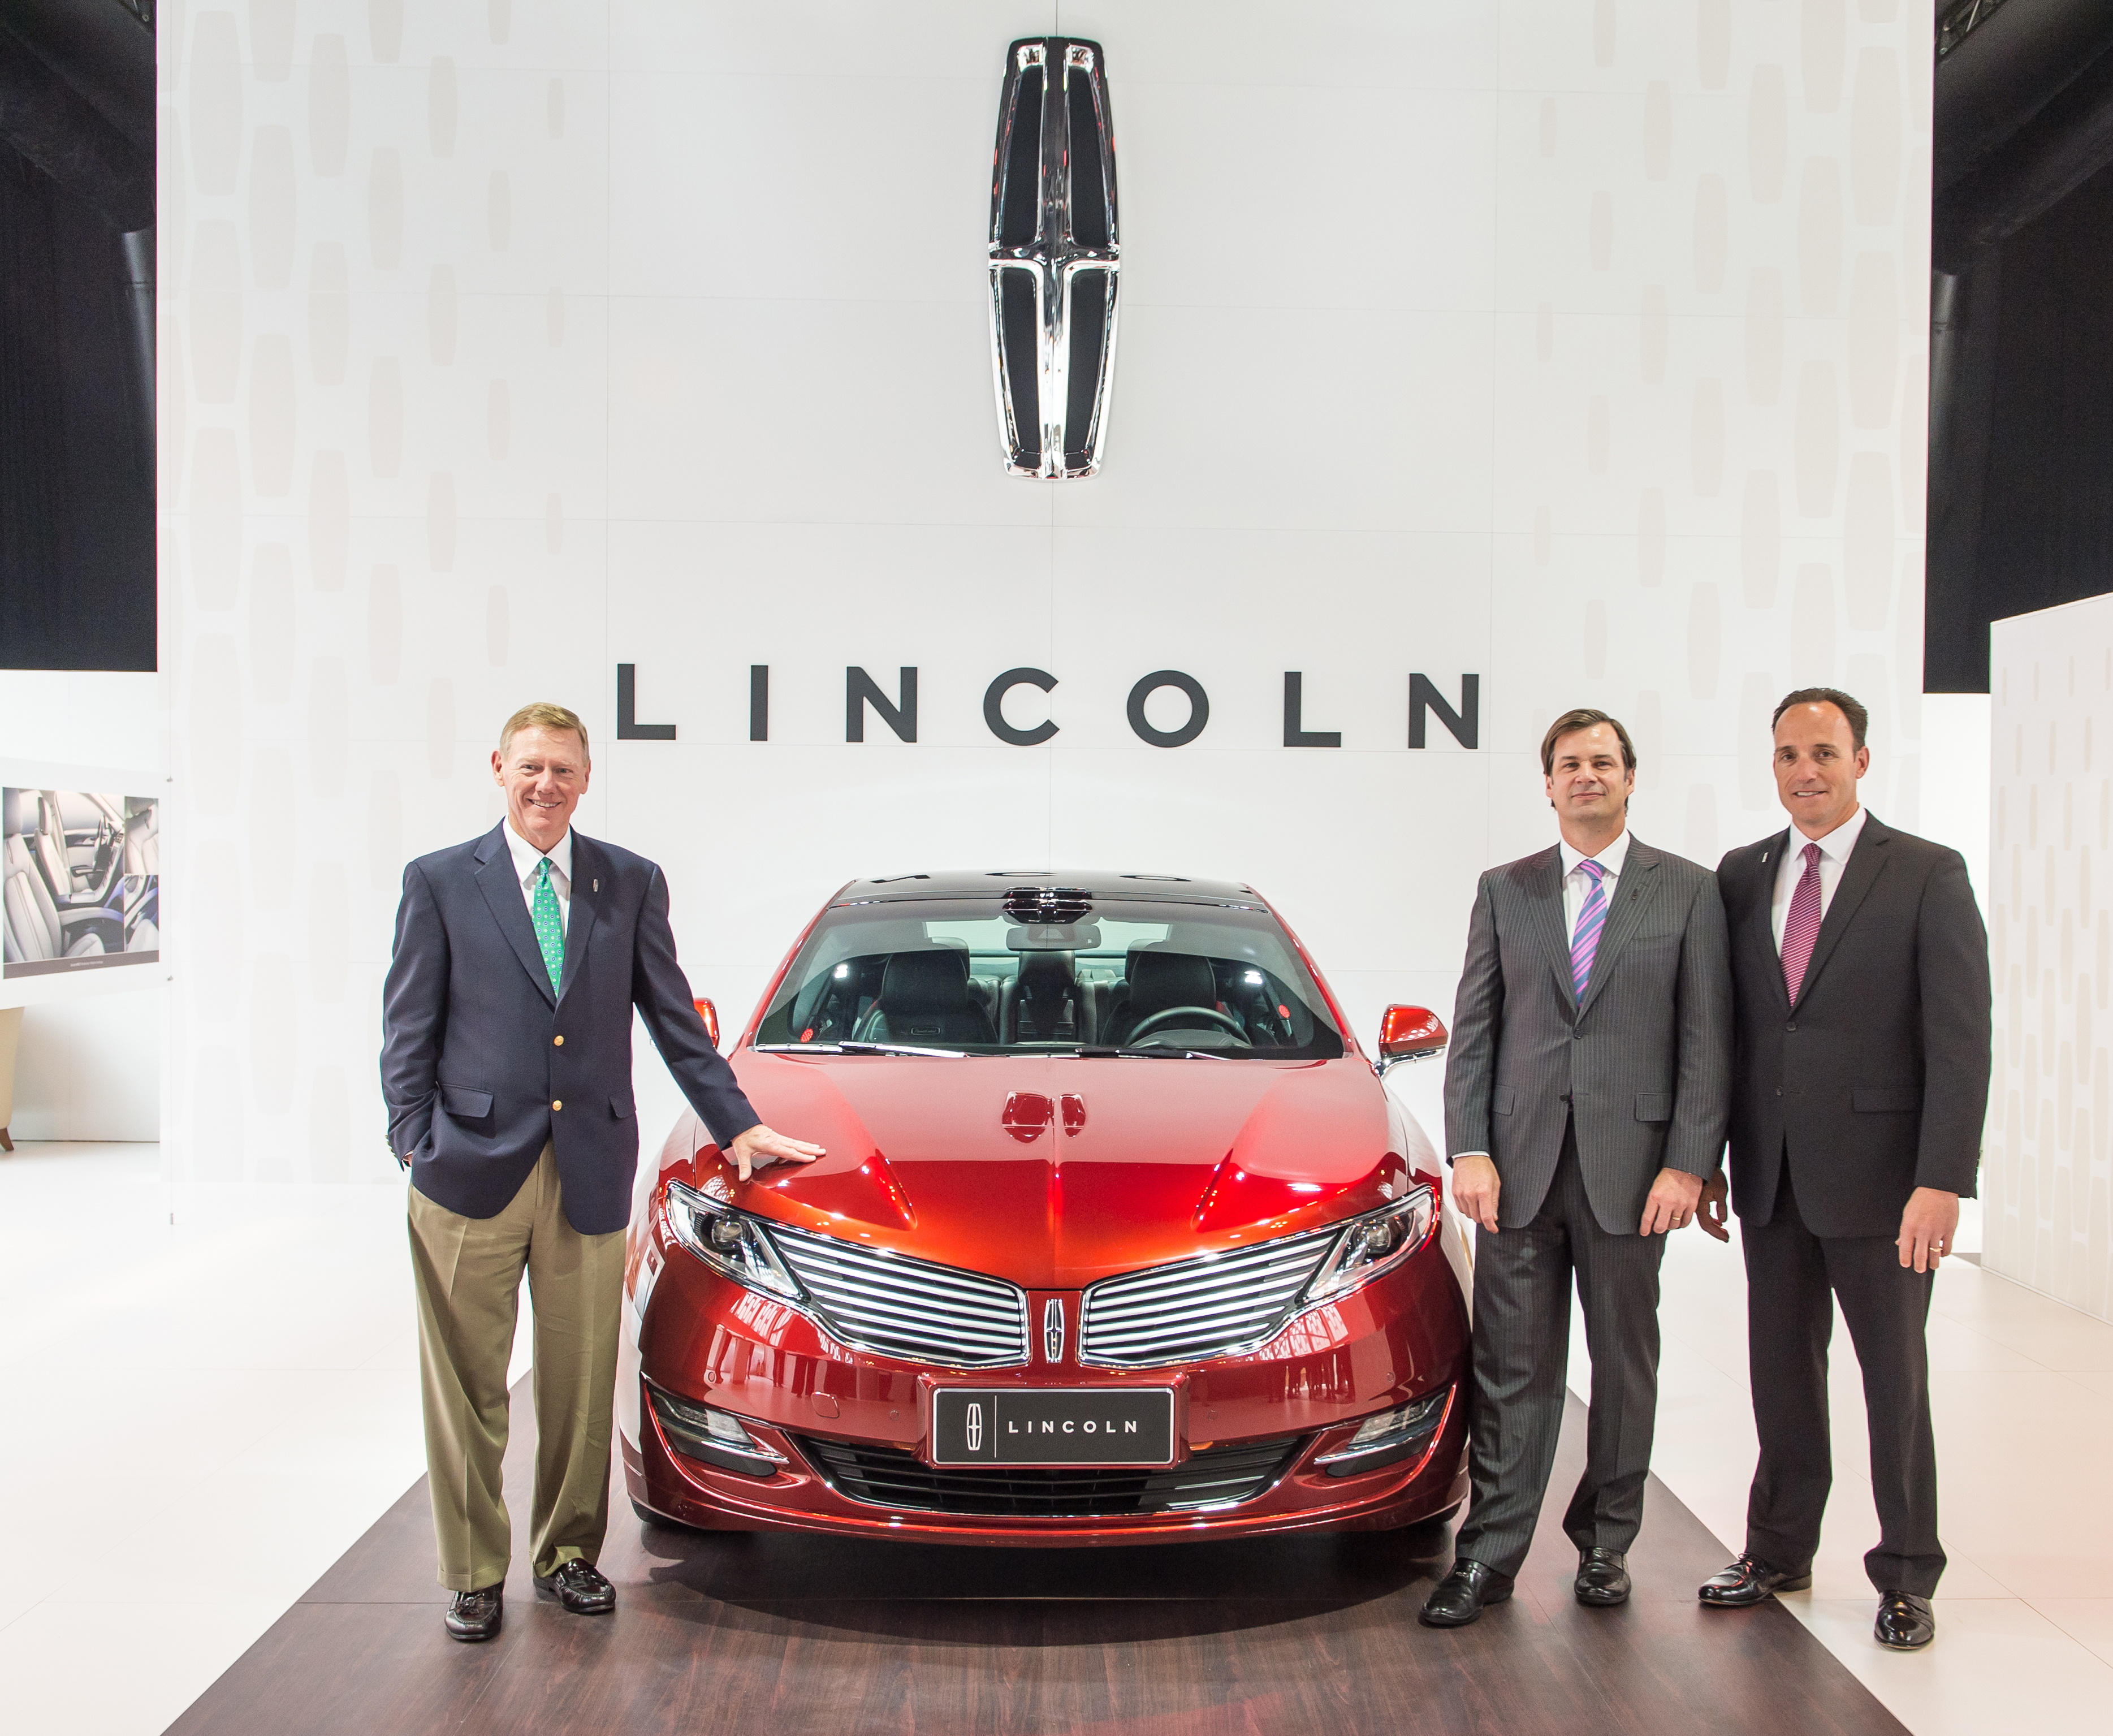 Lincoln officially introduces its brand to China today, offering an innovative ownership experience unlike any other to meet the evolving needs of today's Chinese luxury auto customer. Making the announcement are (left to right) Alan Mulally, president and CEO, Ford Motor Company; Jim Farley, executive vice president, Ford global marketing, sales and service and Lincoln; and Robert Parker, president, Lincoln China. (Photo: Business Wire)